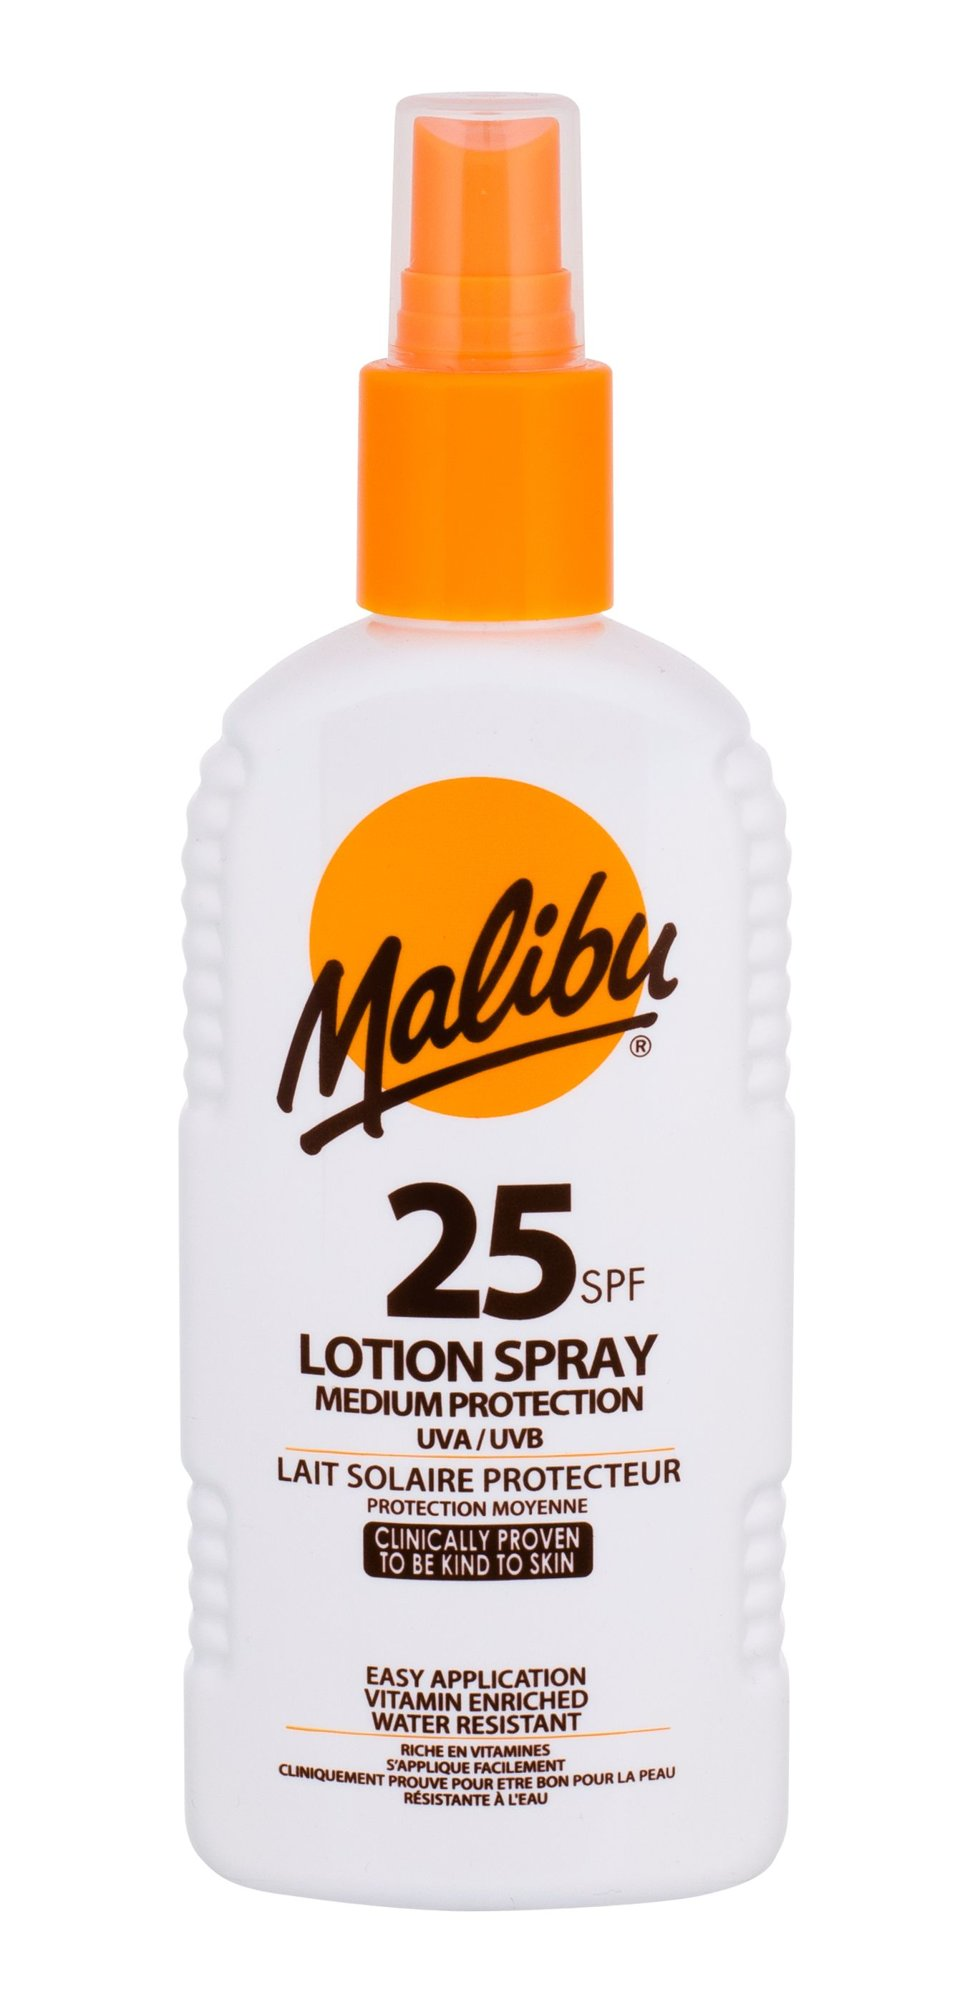 Malibu Lotion Spray SPF25